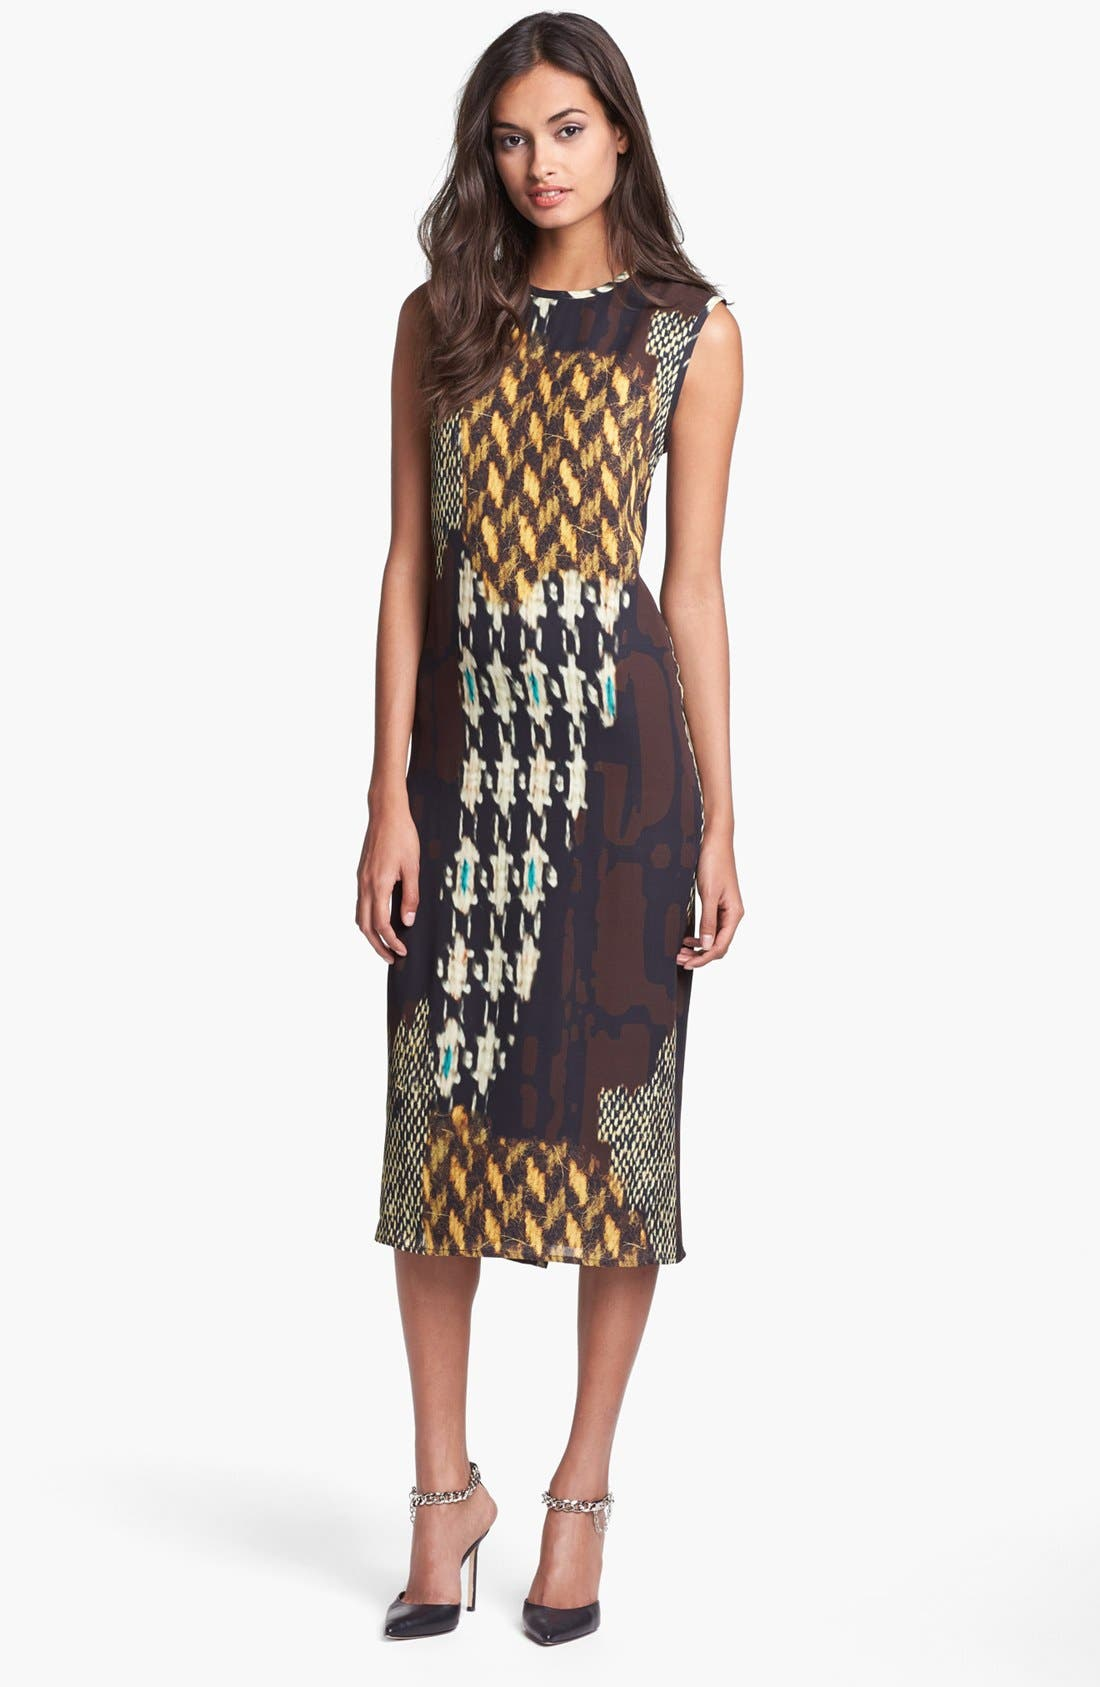 Alternate Image 1 Selected - Trina Turk 'Lottie' Print Midi Dress